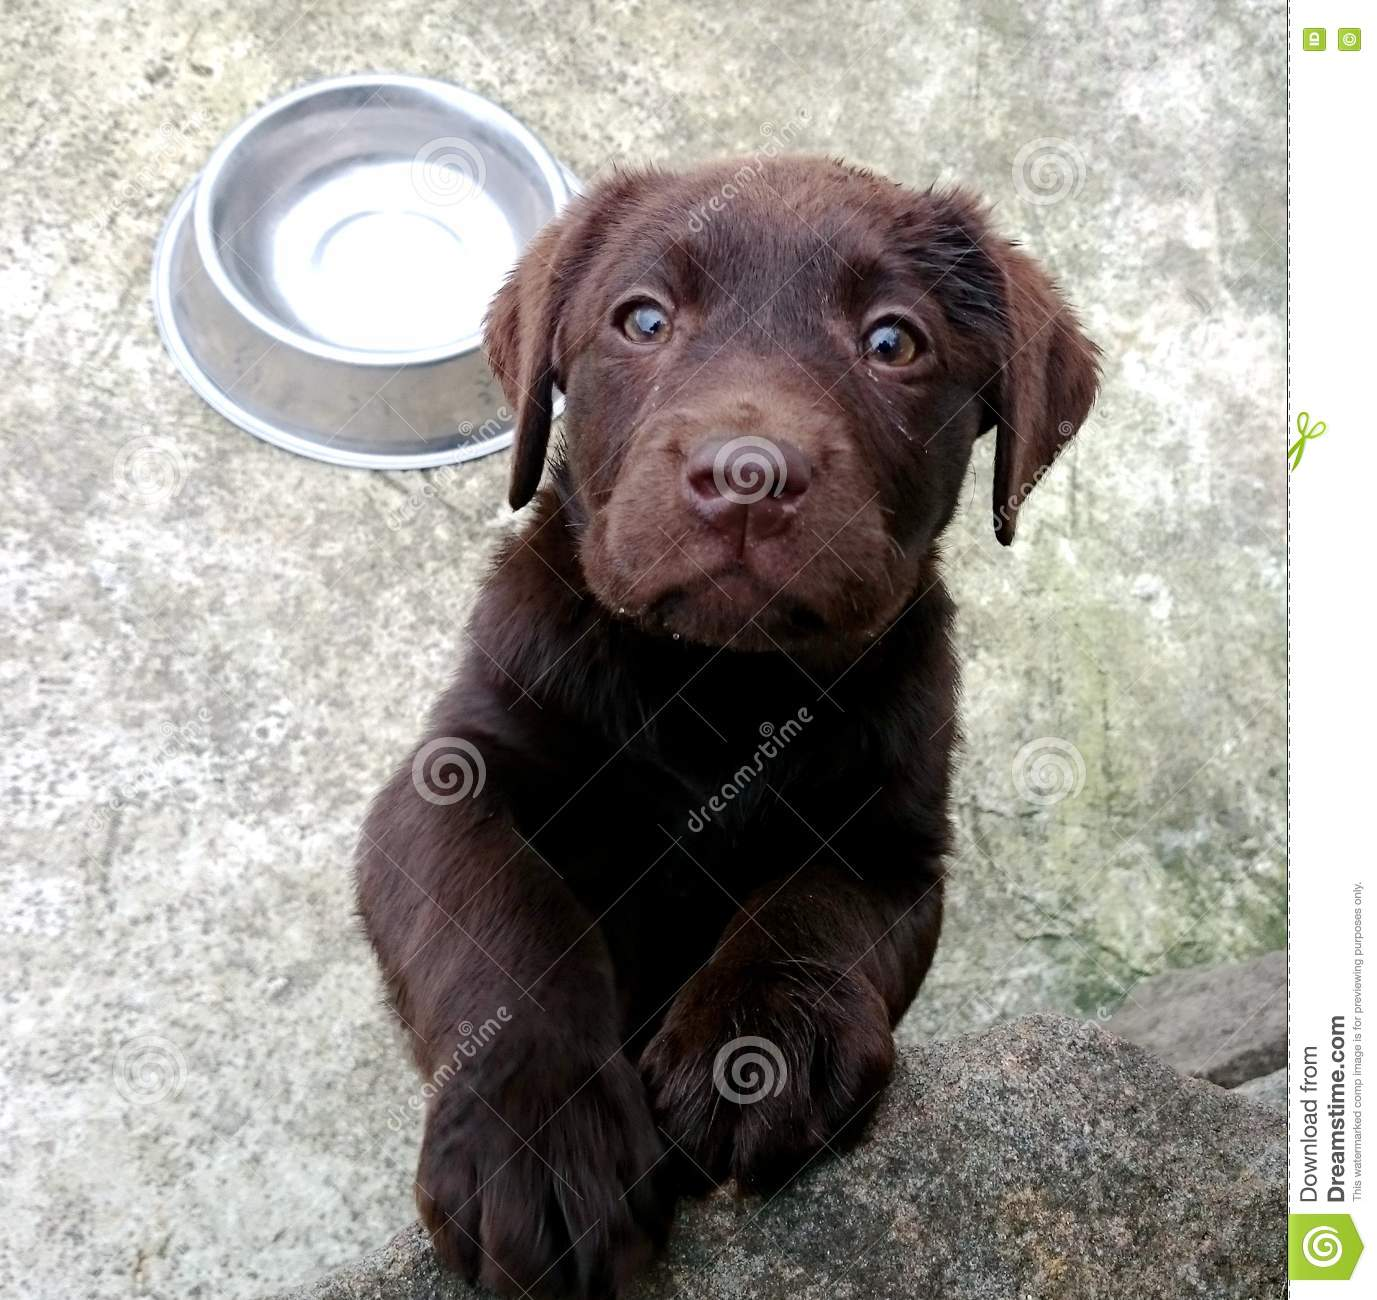 Dog Breeders Chocolate Labrador Puppy For Sale Stock Image